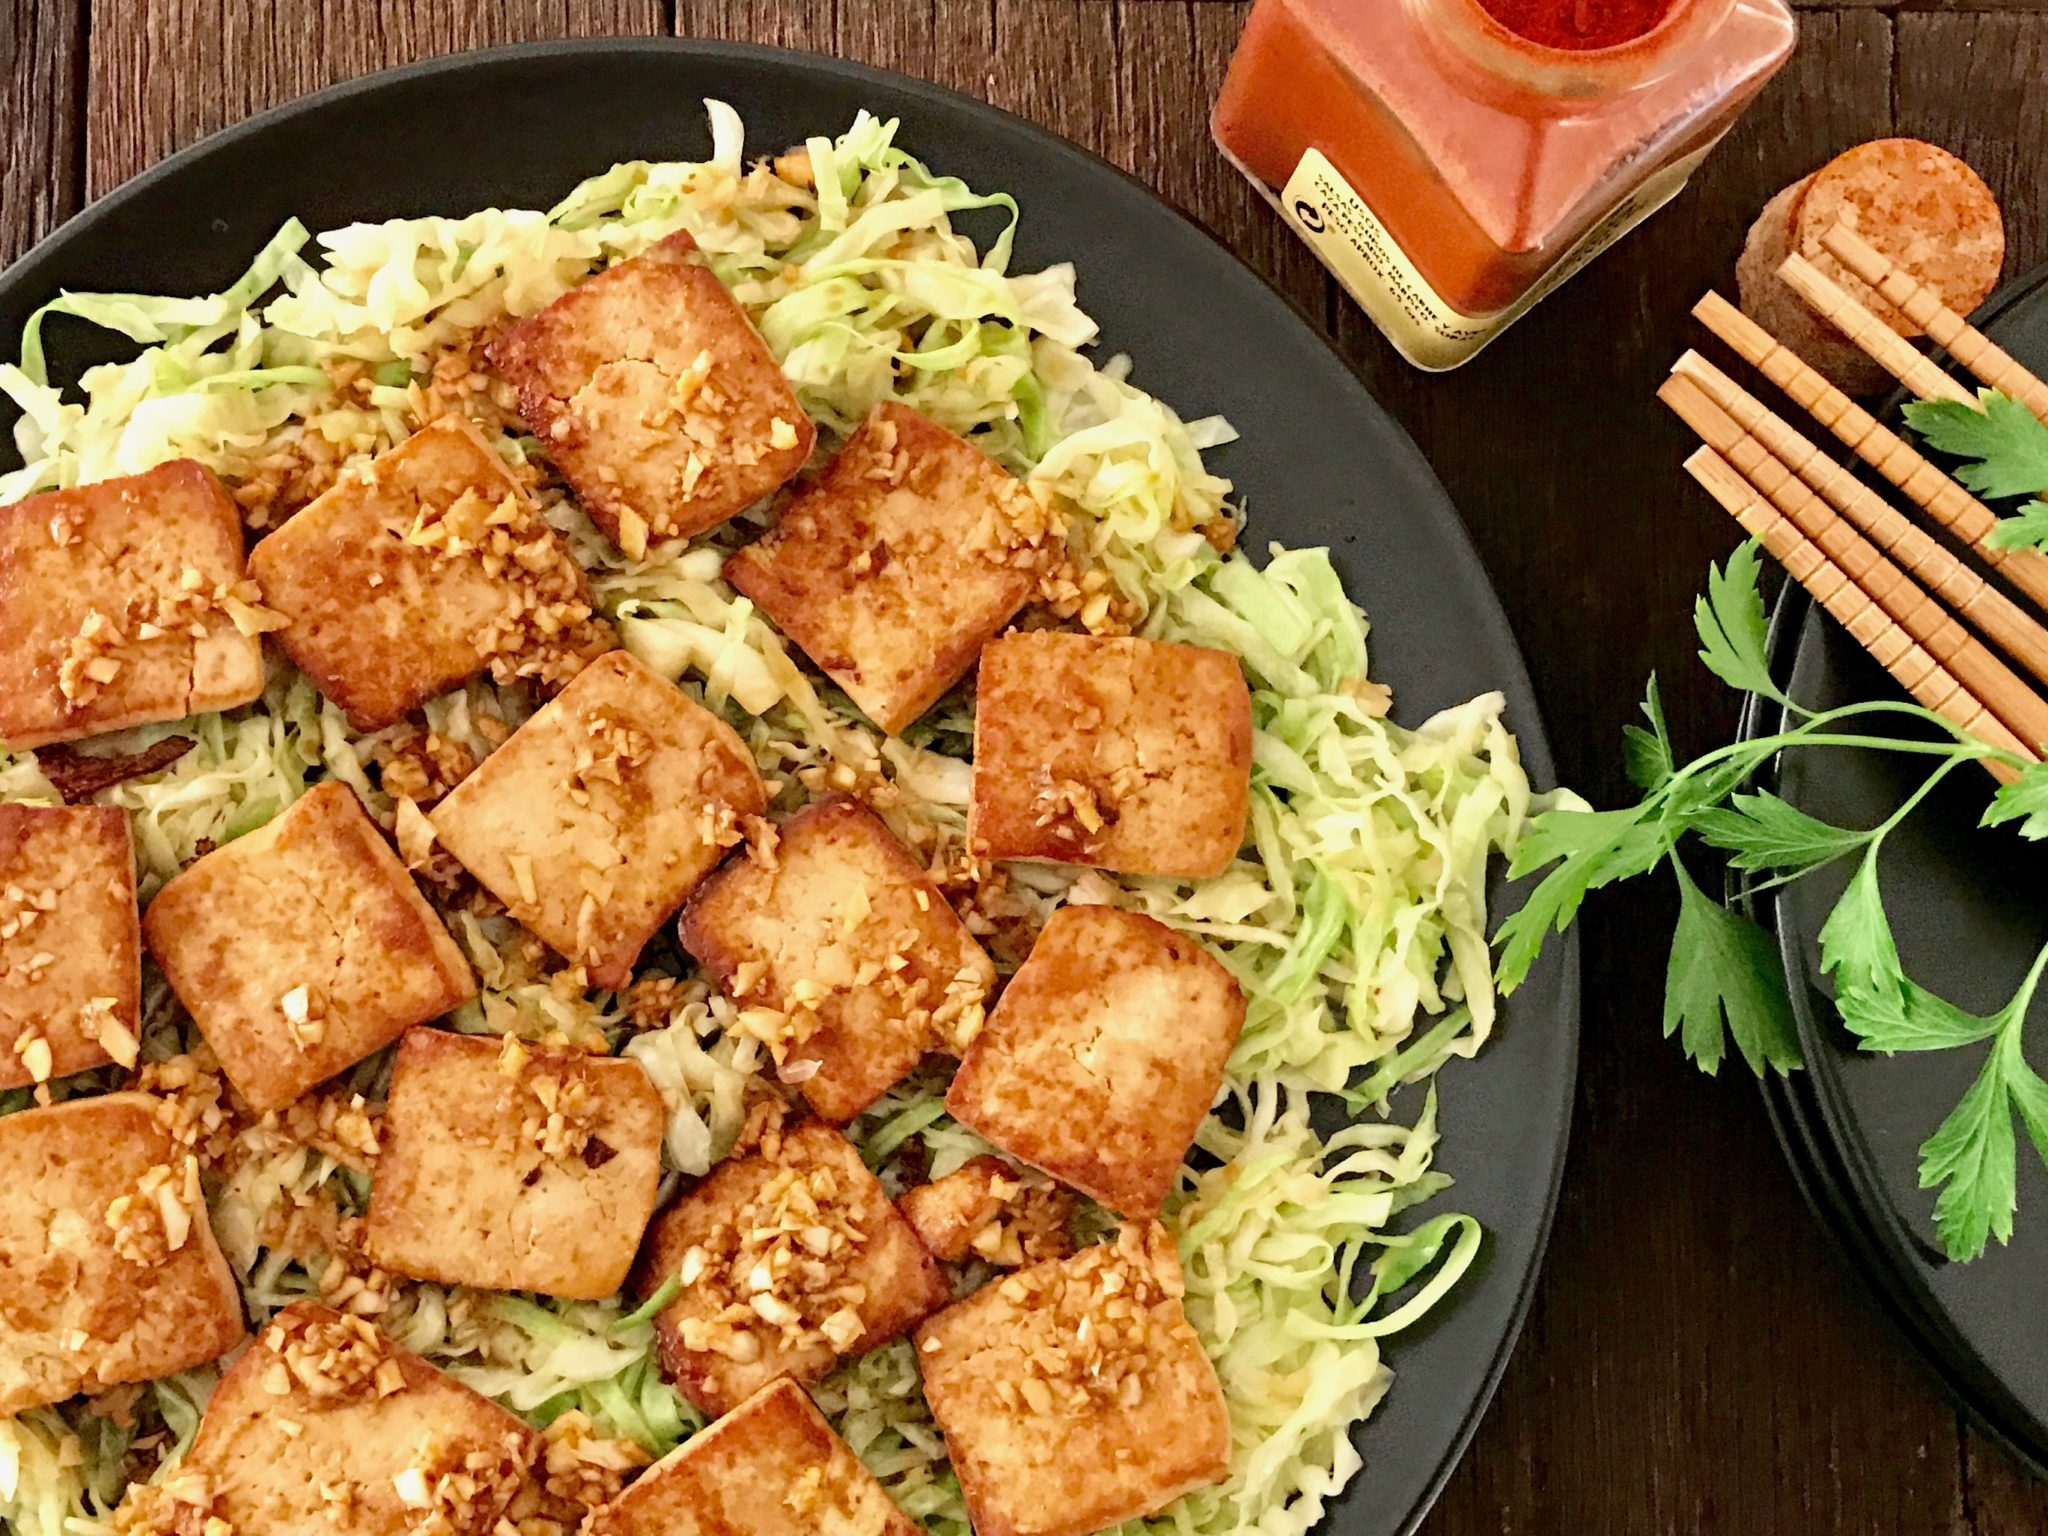 pour the sauce over the tofu and cabbage